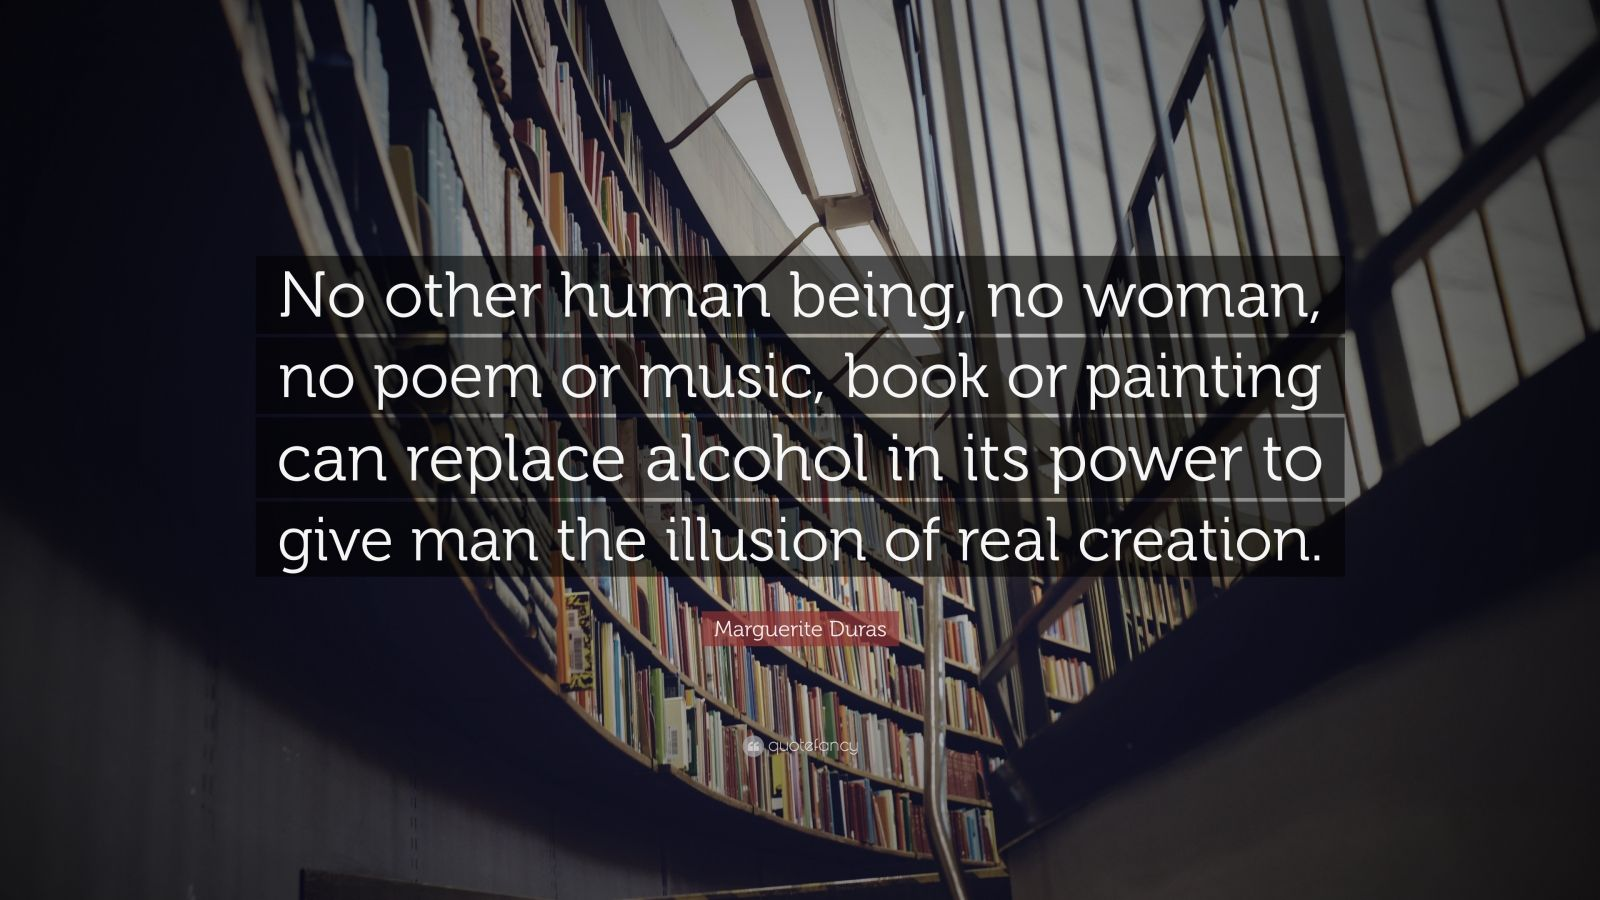 """Marguerite Duras Quote: """"No other human being, no woman, no poem or music, book or painting can replace alcohol in its power to give man the illusion of real creation."""""""